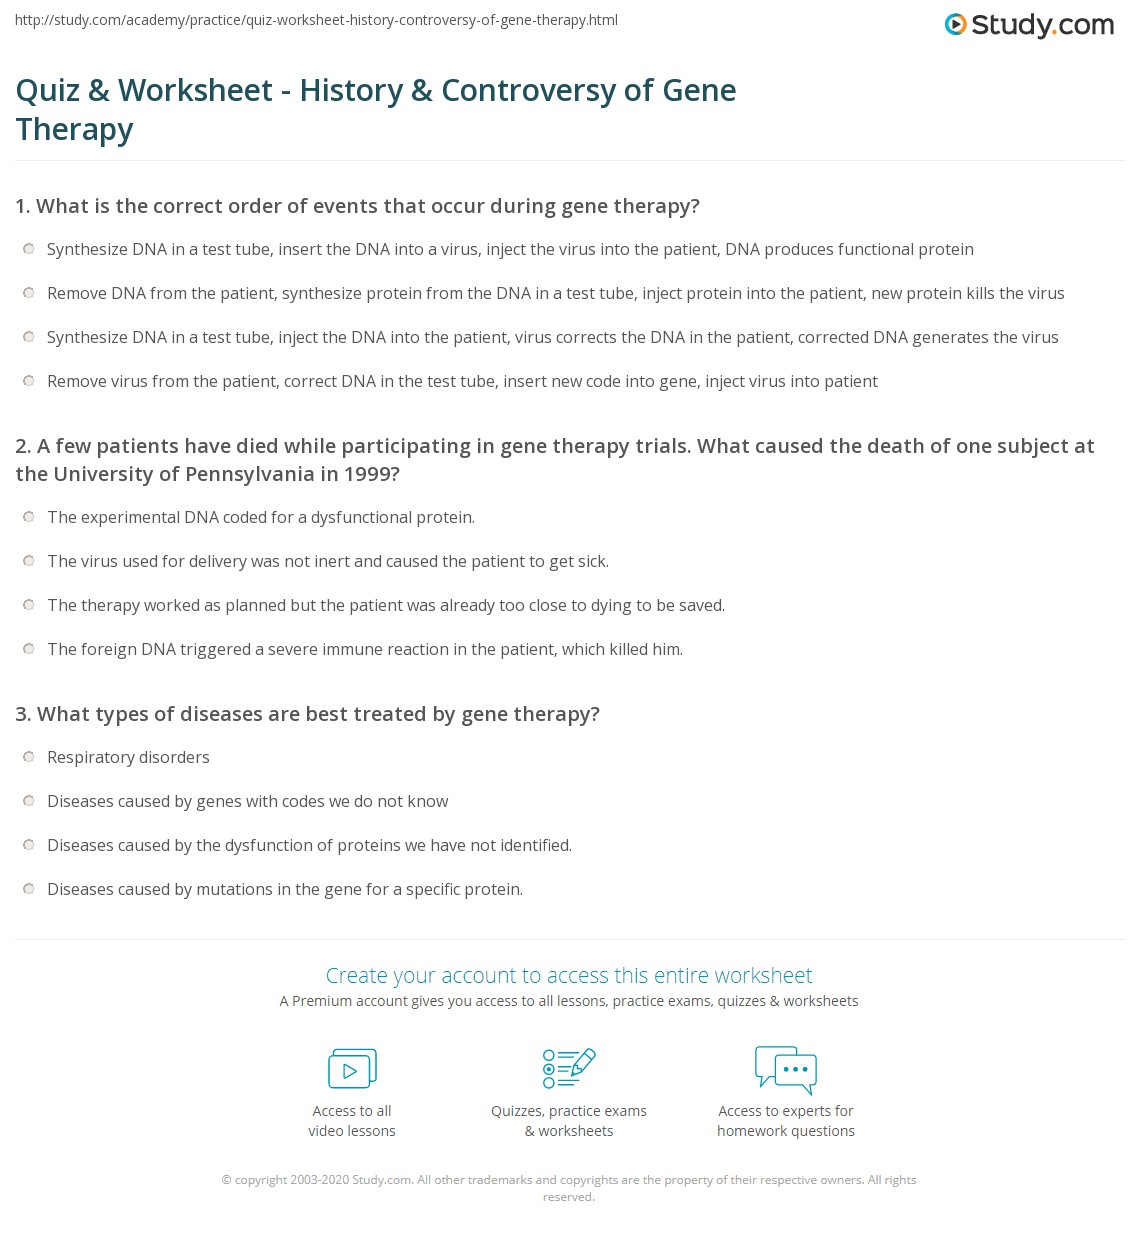 quiz worksheet history controversy of gene therapy. Black Bedroom Furniture Sets. Home Design Ideas